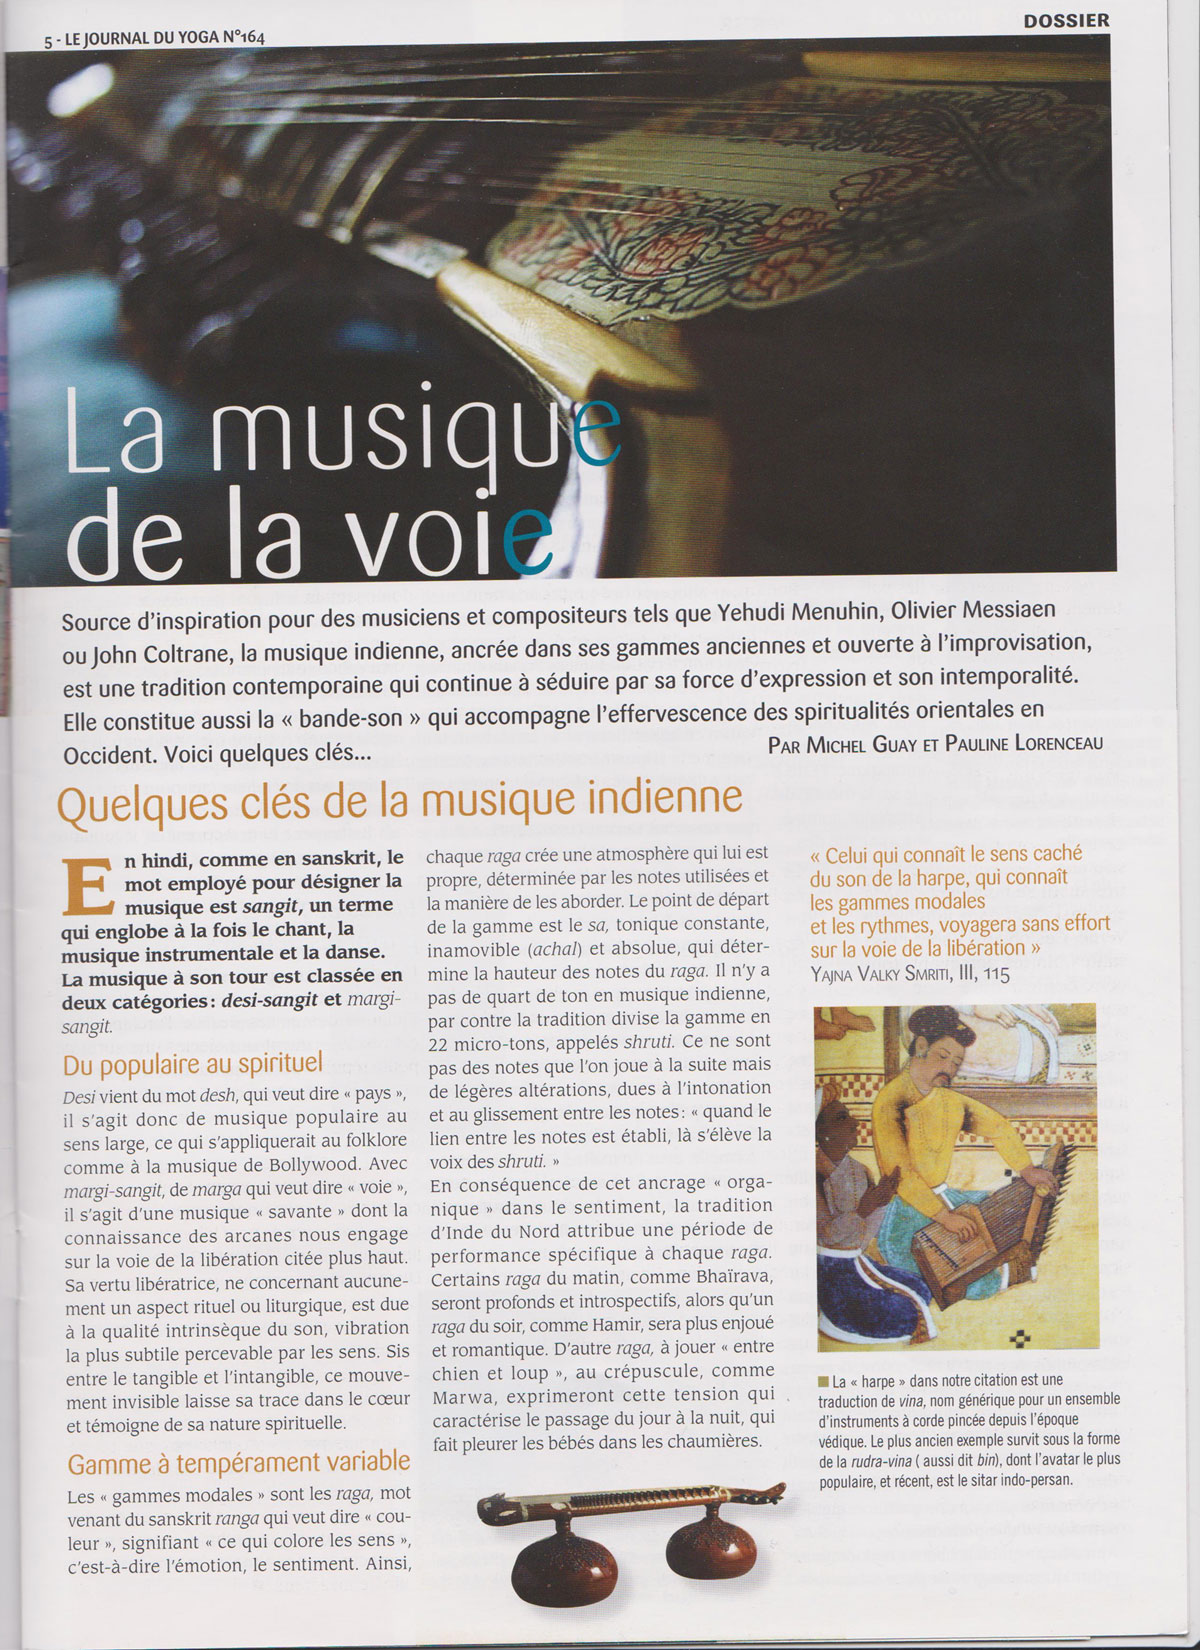 Article dans le journal du yoga